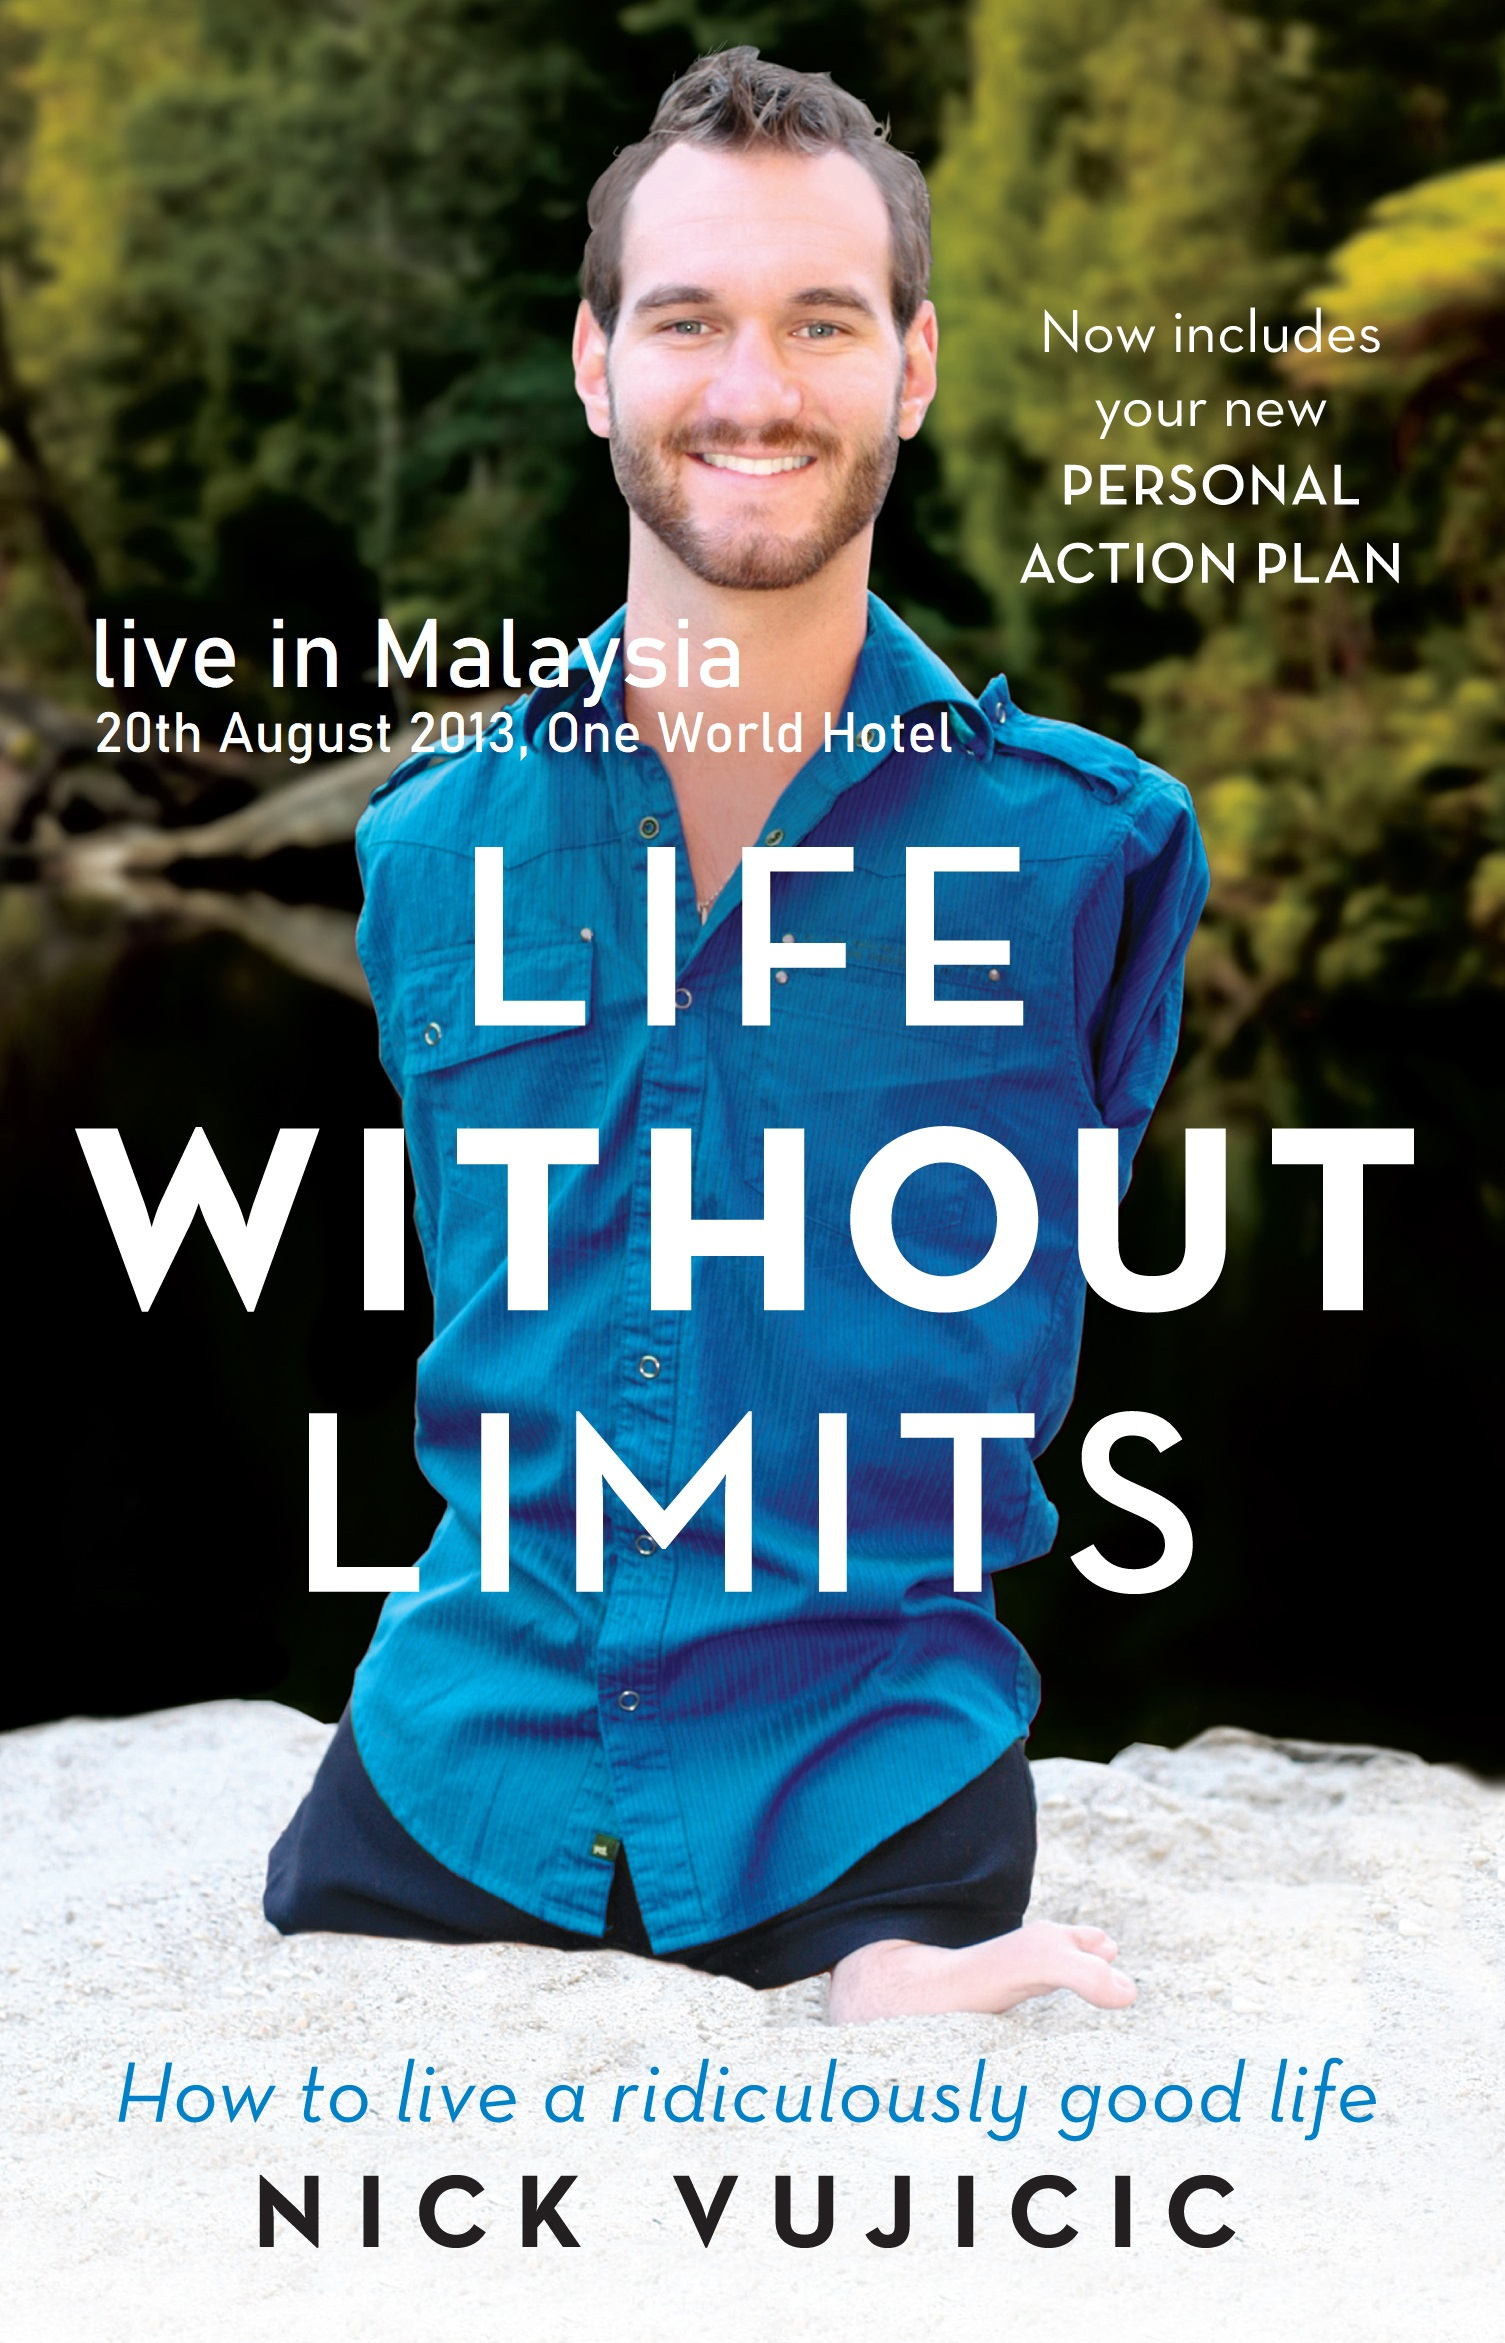 Nick Vujicic - IDEAS ASIA Motivational Speaker